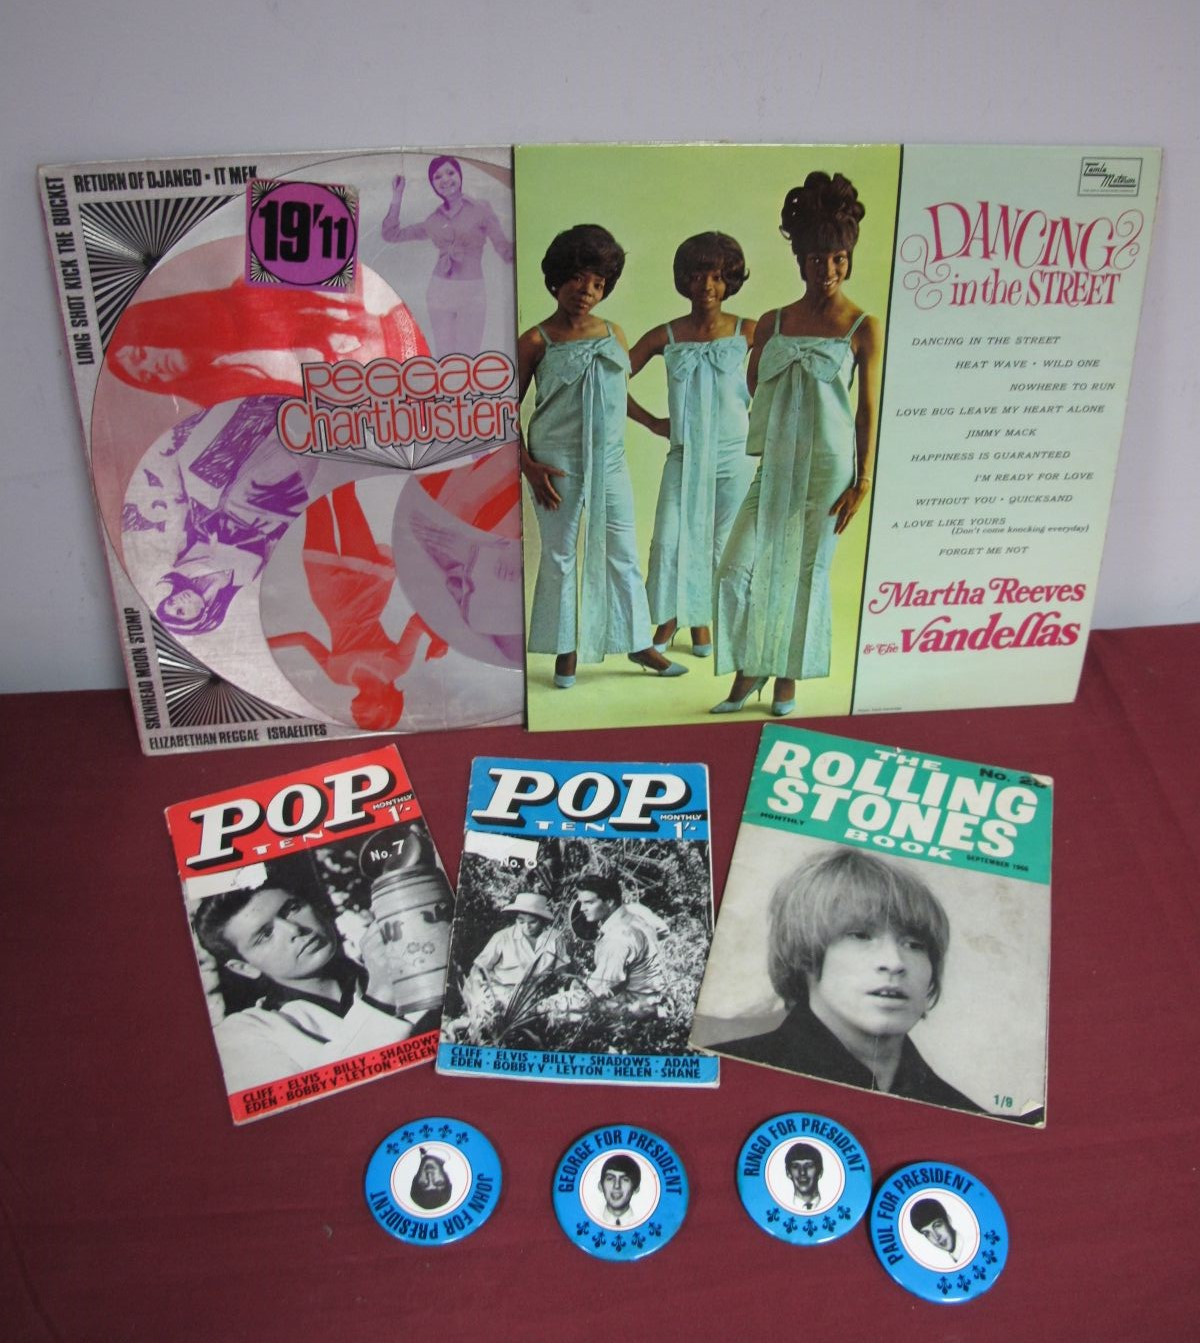 Lot 39 - A Set of Four Beatles 'For President' Pin Badges, each depicting a Beatle profile; together with a